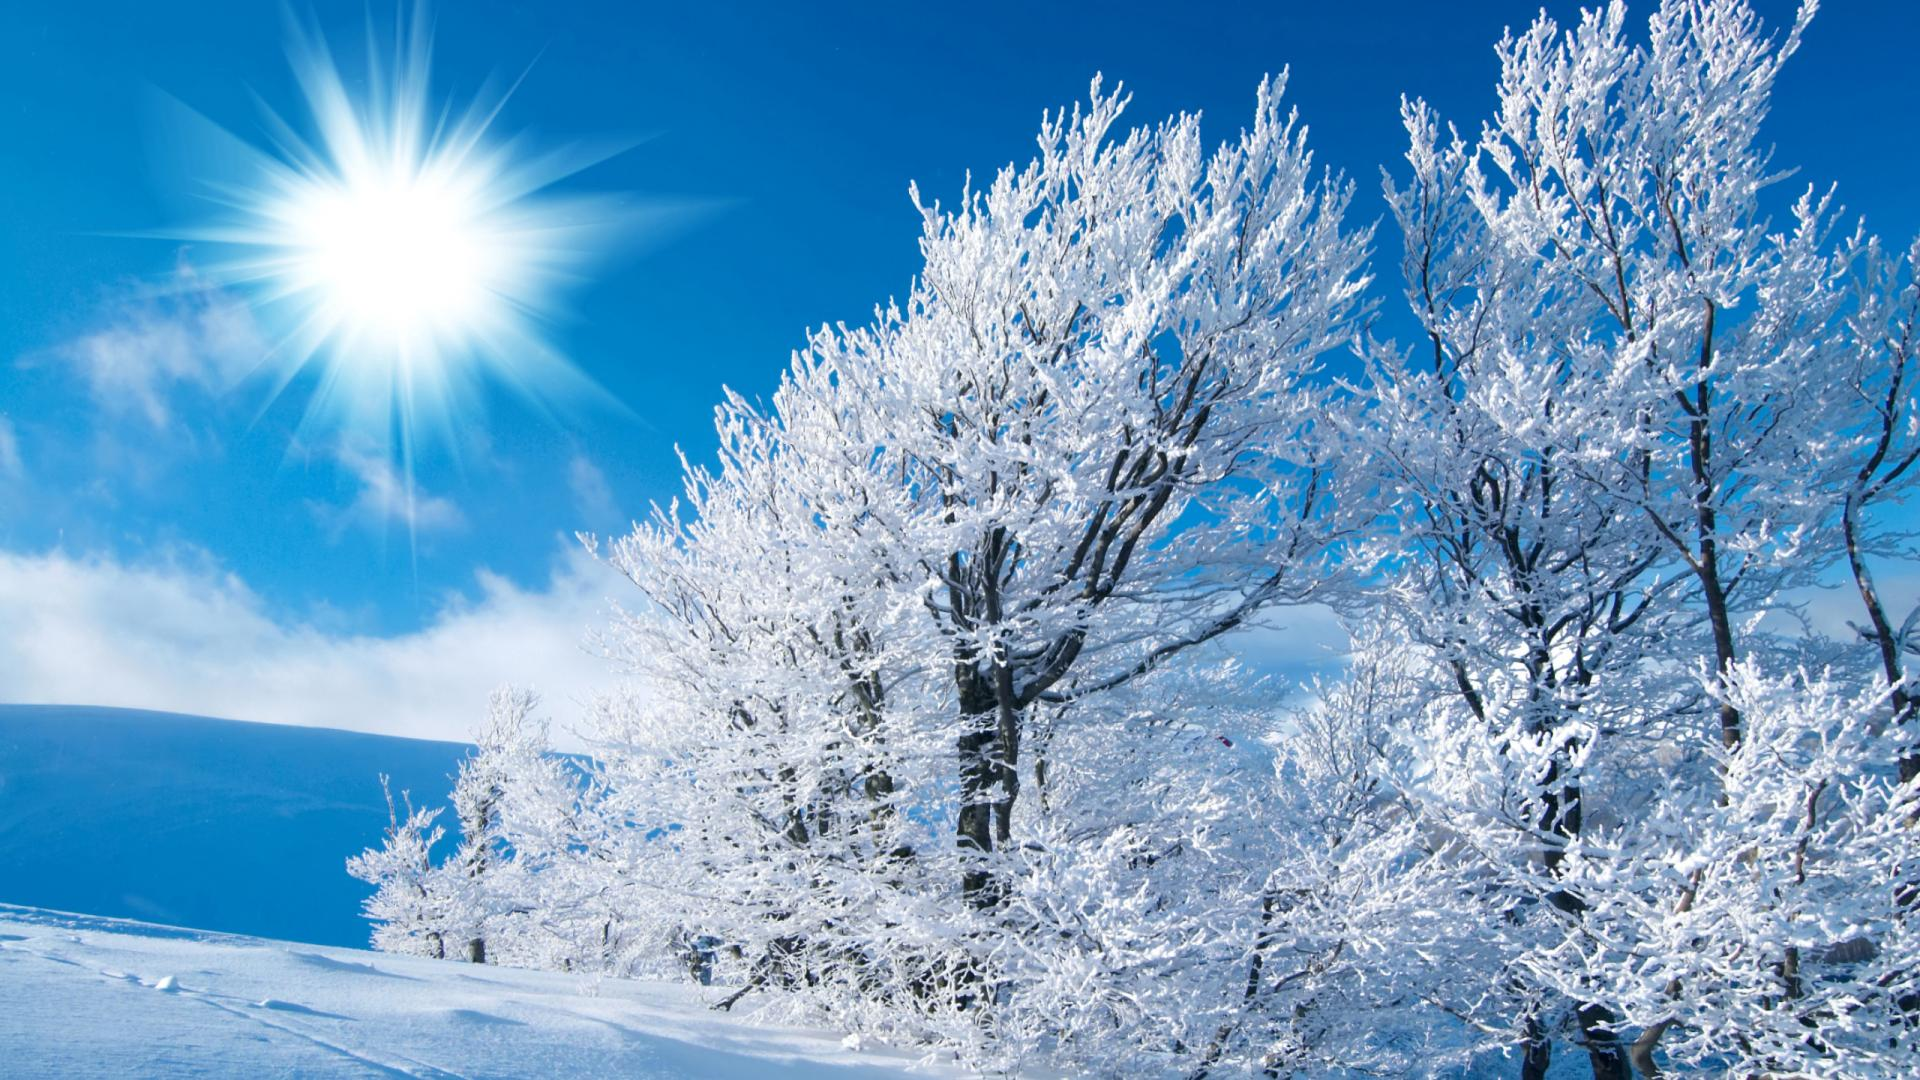 winter desktop backgrounds 12jpg 1920x1080